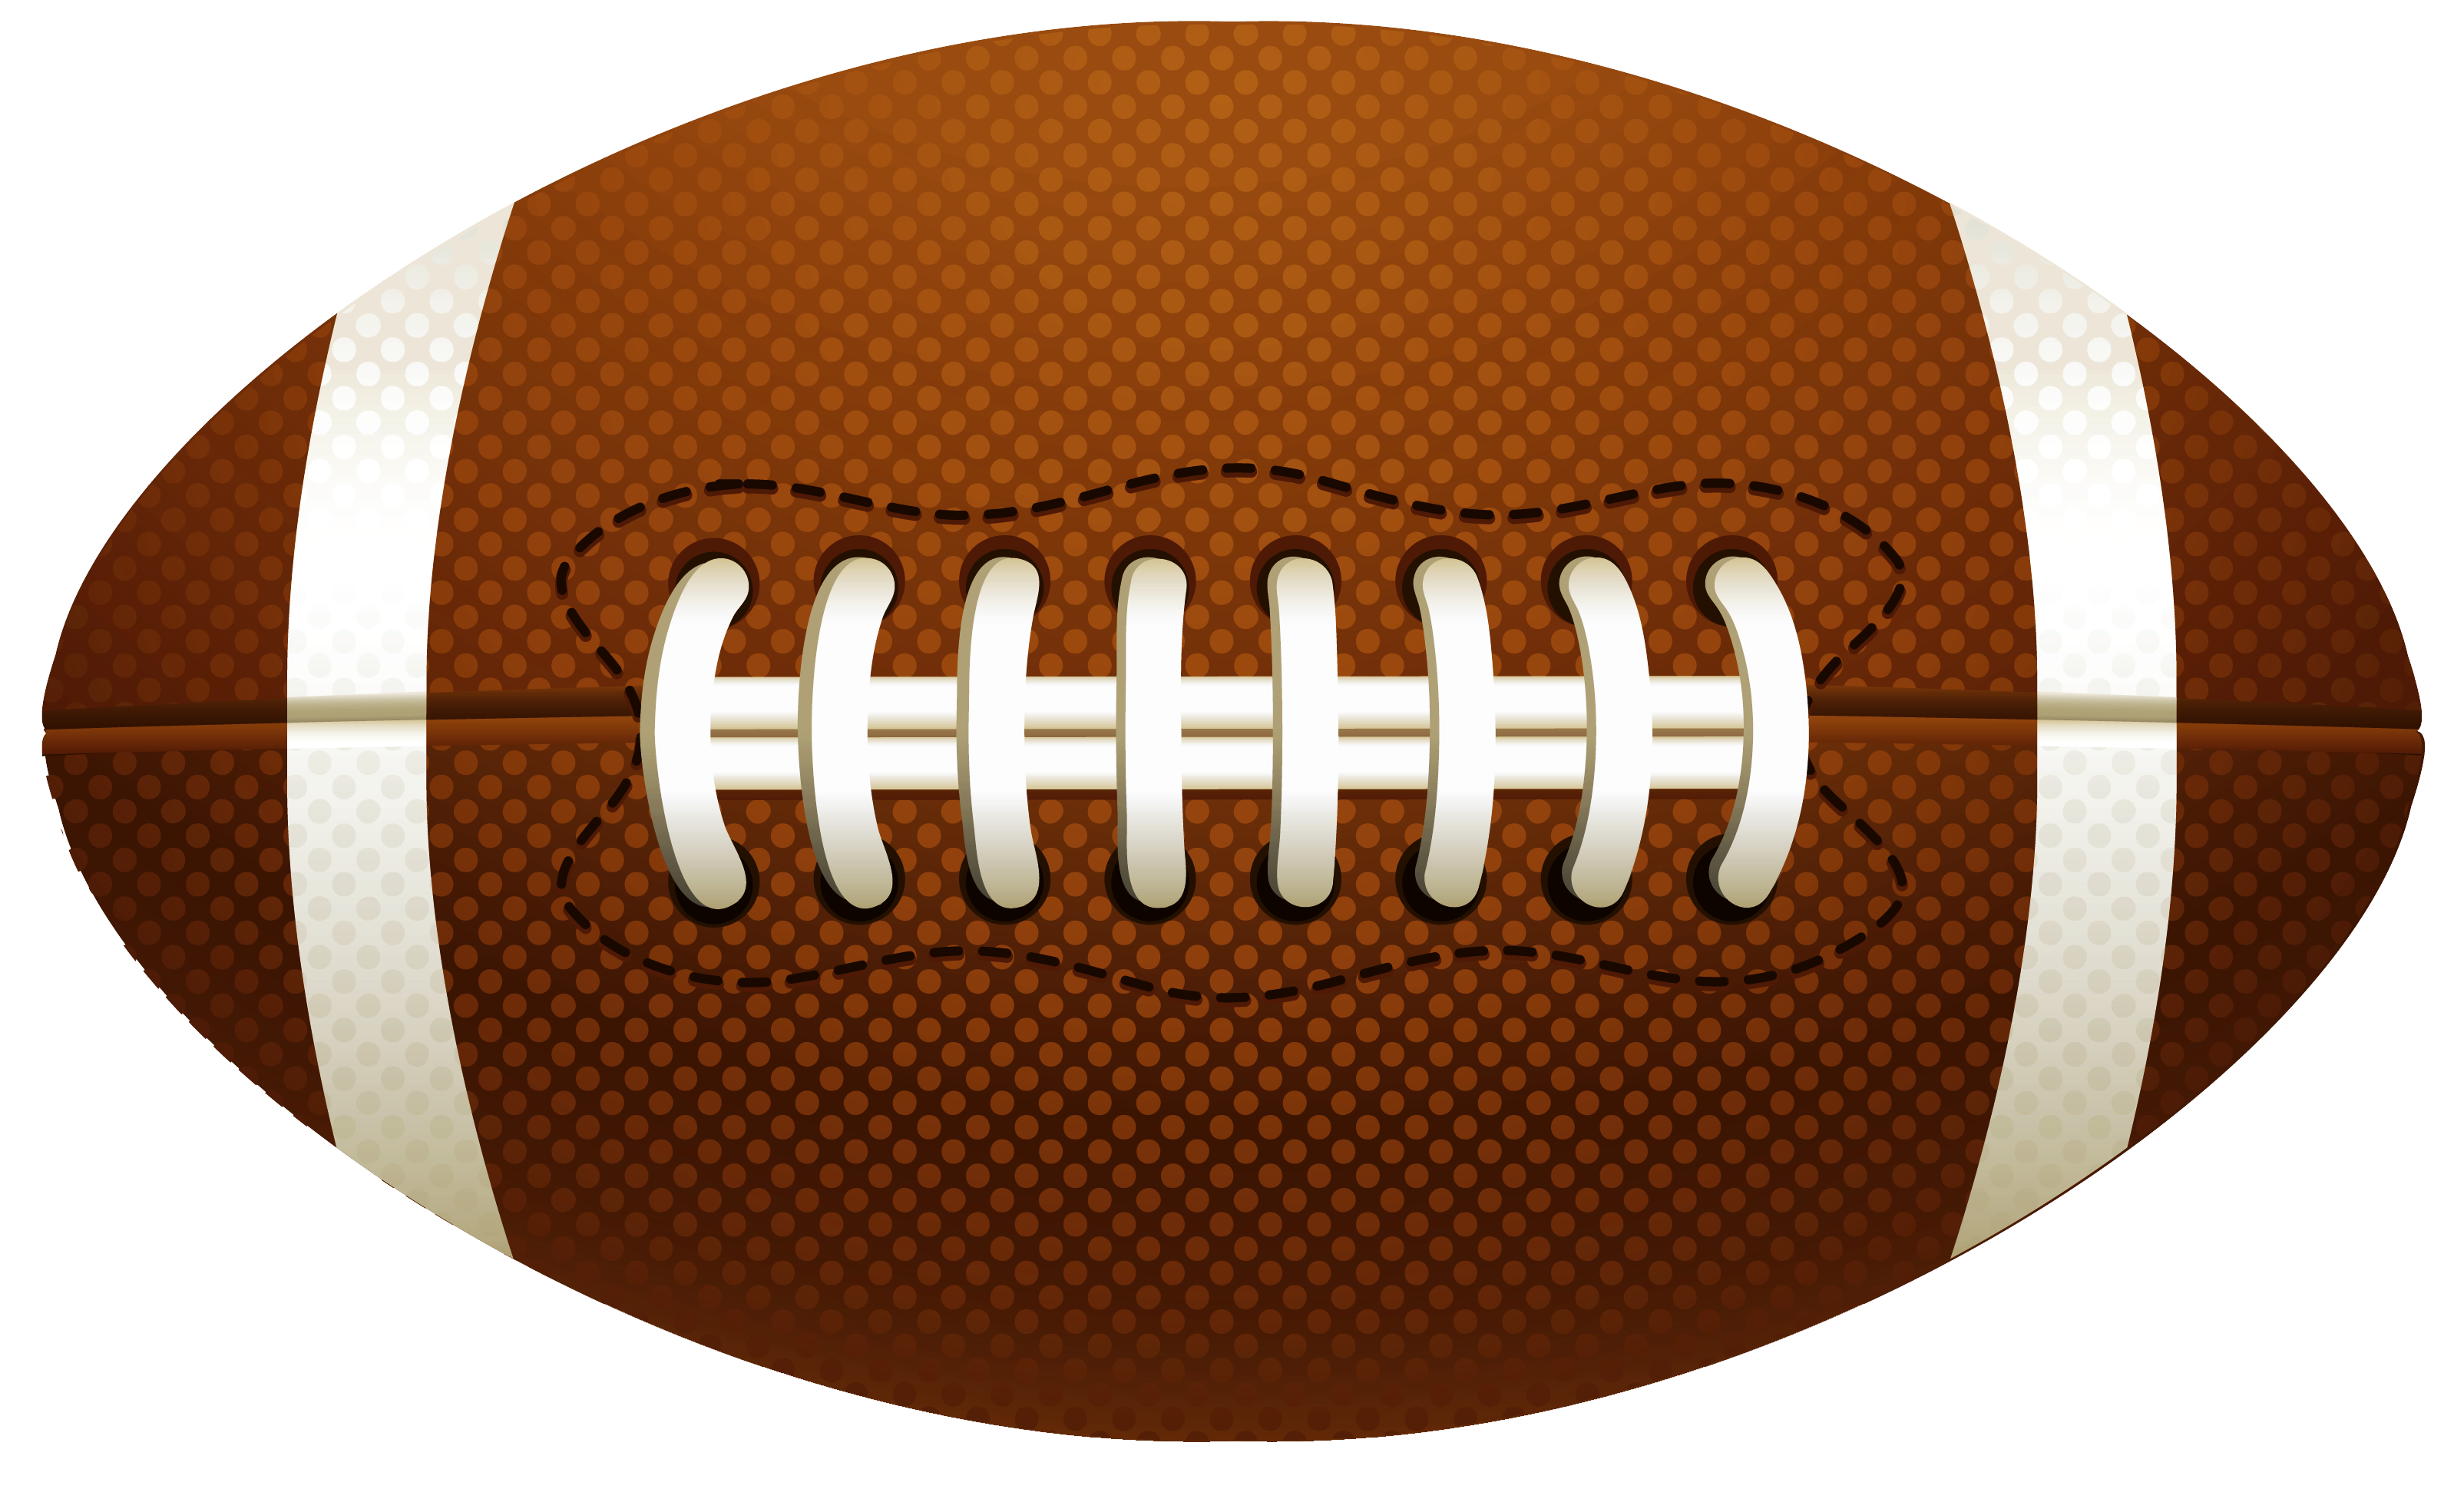 svg  collection of images. Football clipart